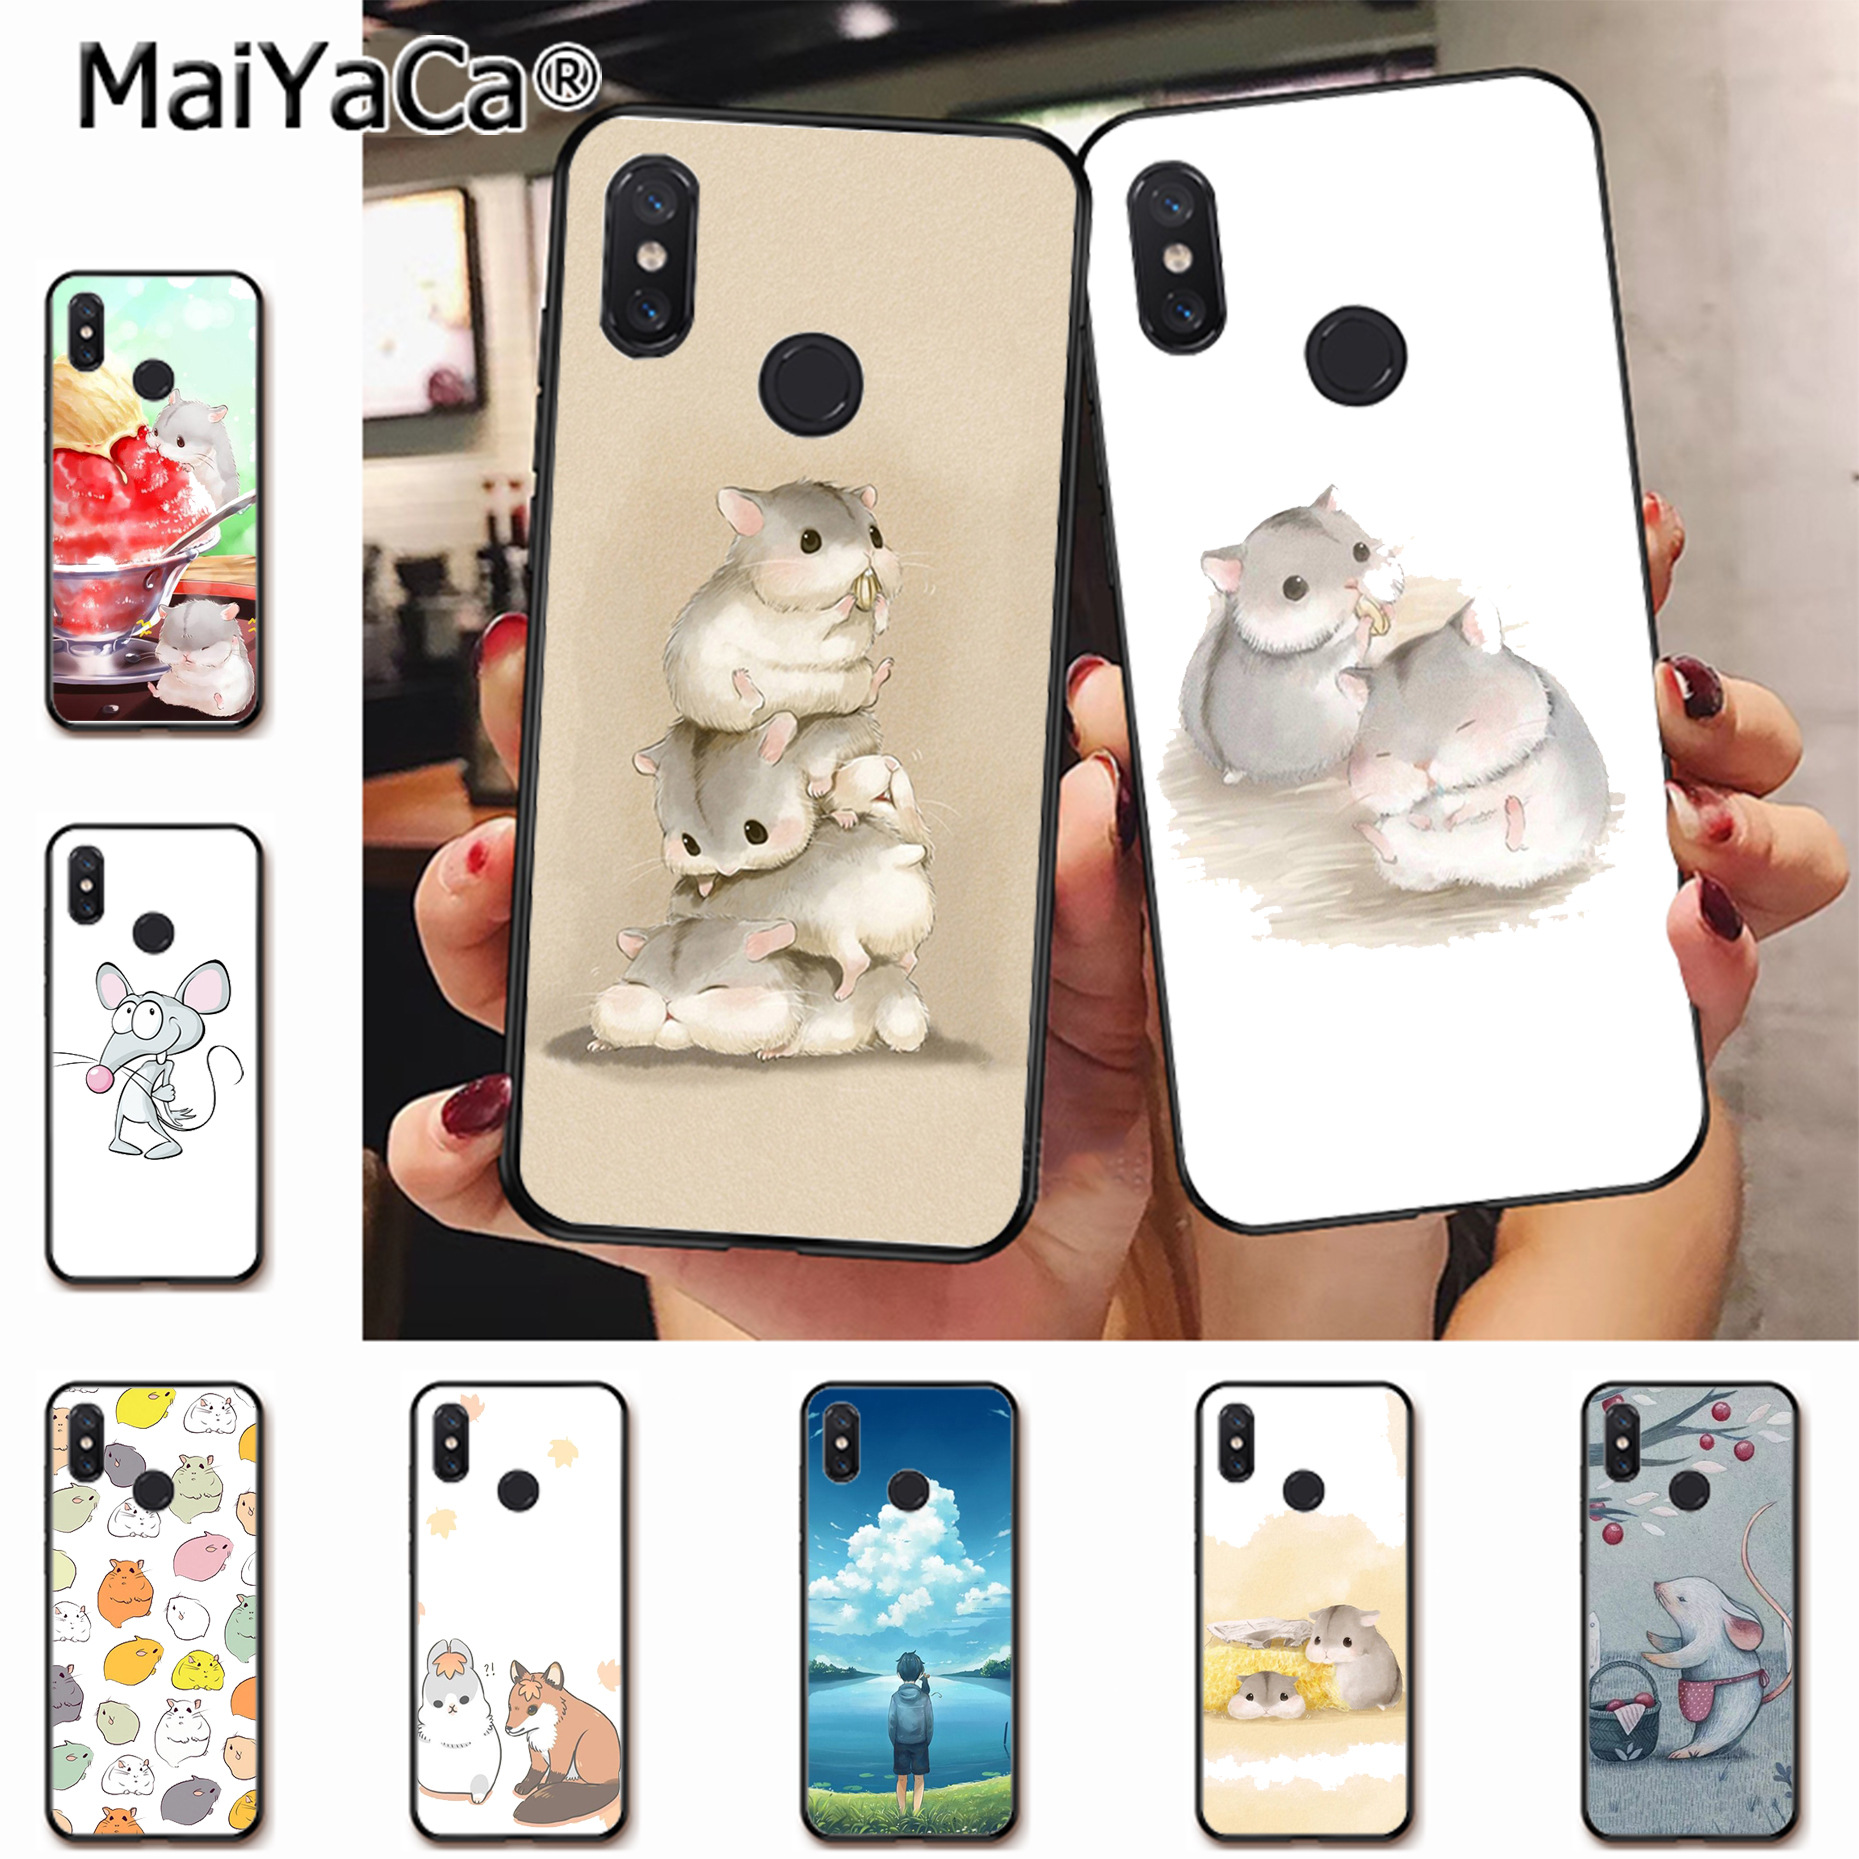 MaiYaCa Cute mouse lovely Amazing Phone Accessories Case for xiaomi mi 6  8 se note2 3 mix2 redmi 5 5plus note 4 5 5 case coque